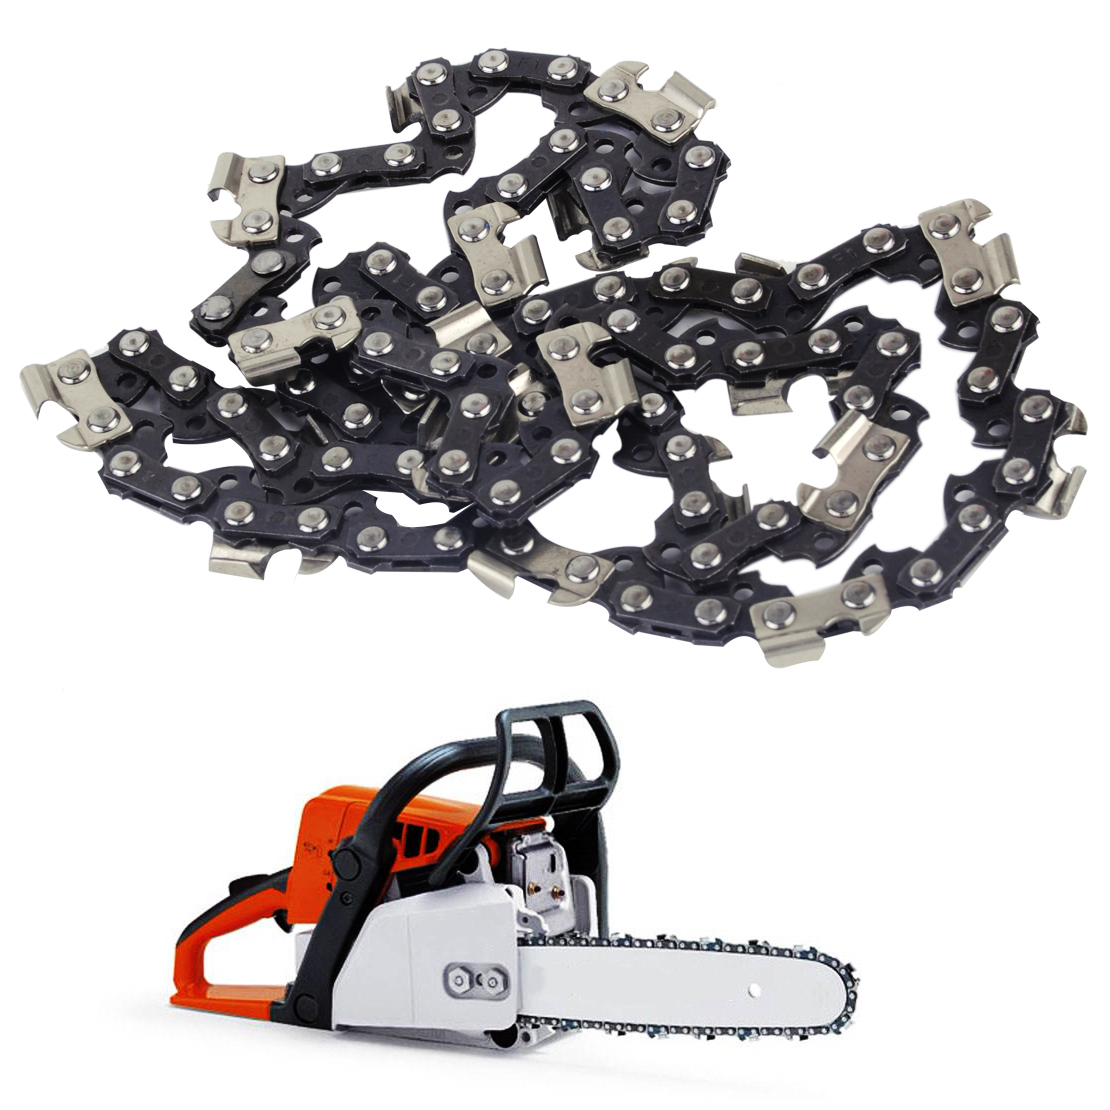 12 Chainsaw Chain 44DL For Stihl MS170//MS180//MS181//MS190//MS210 Chainsaw Parts #